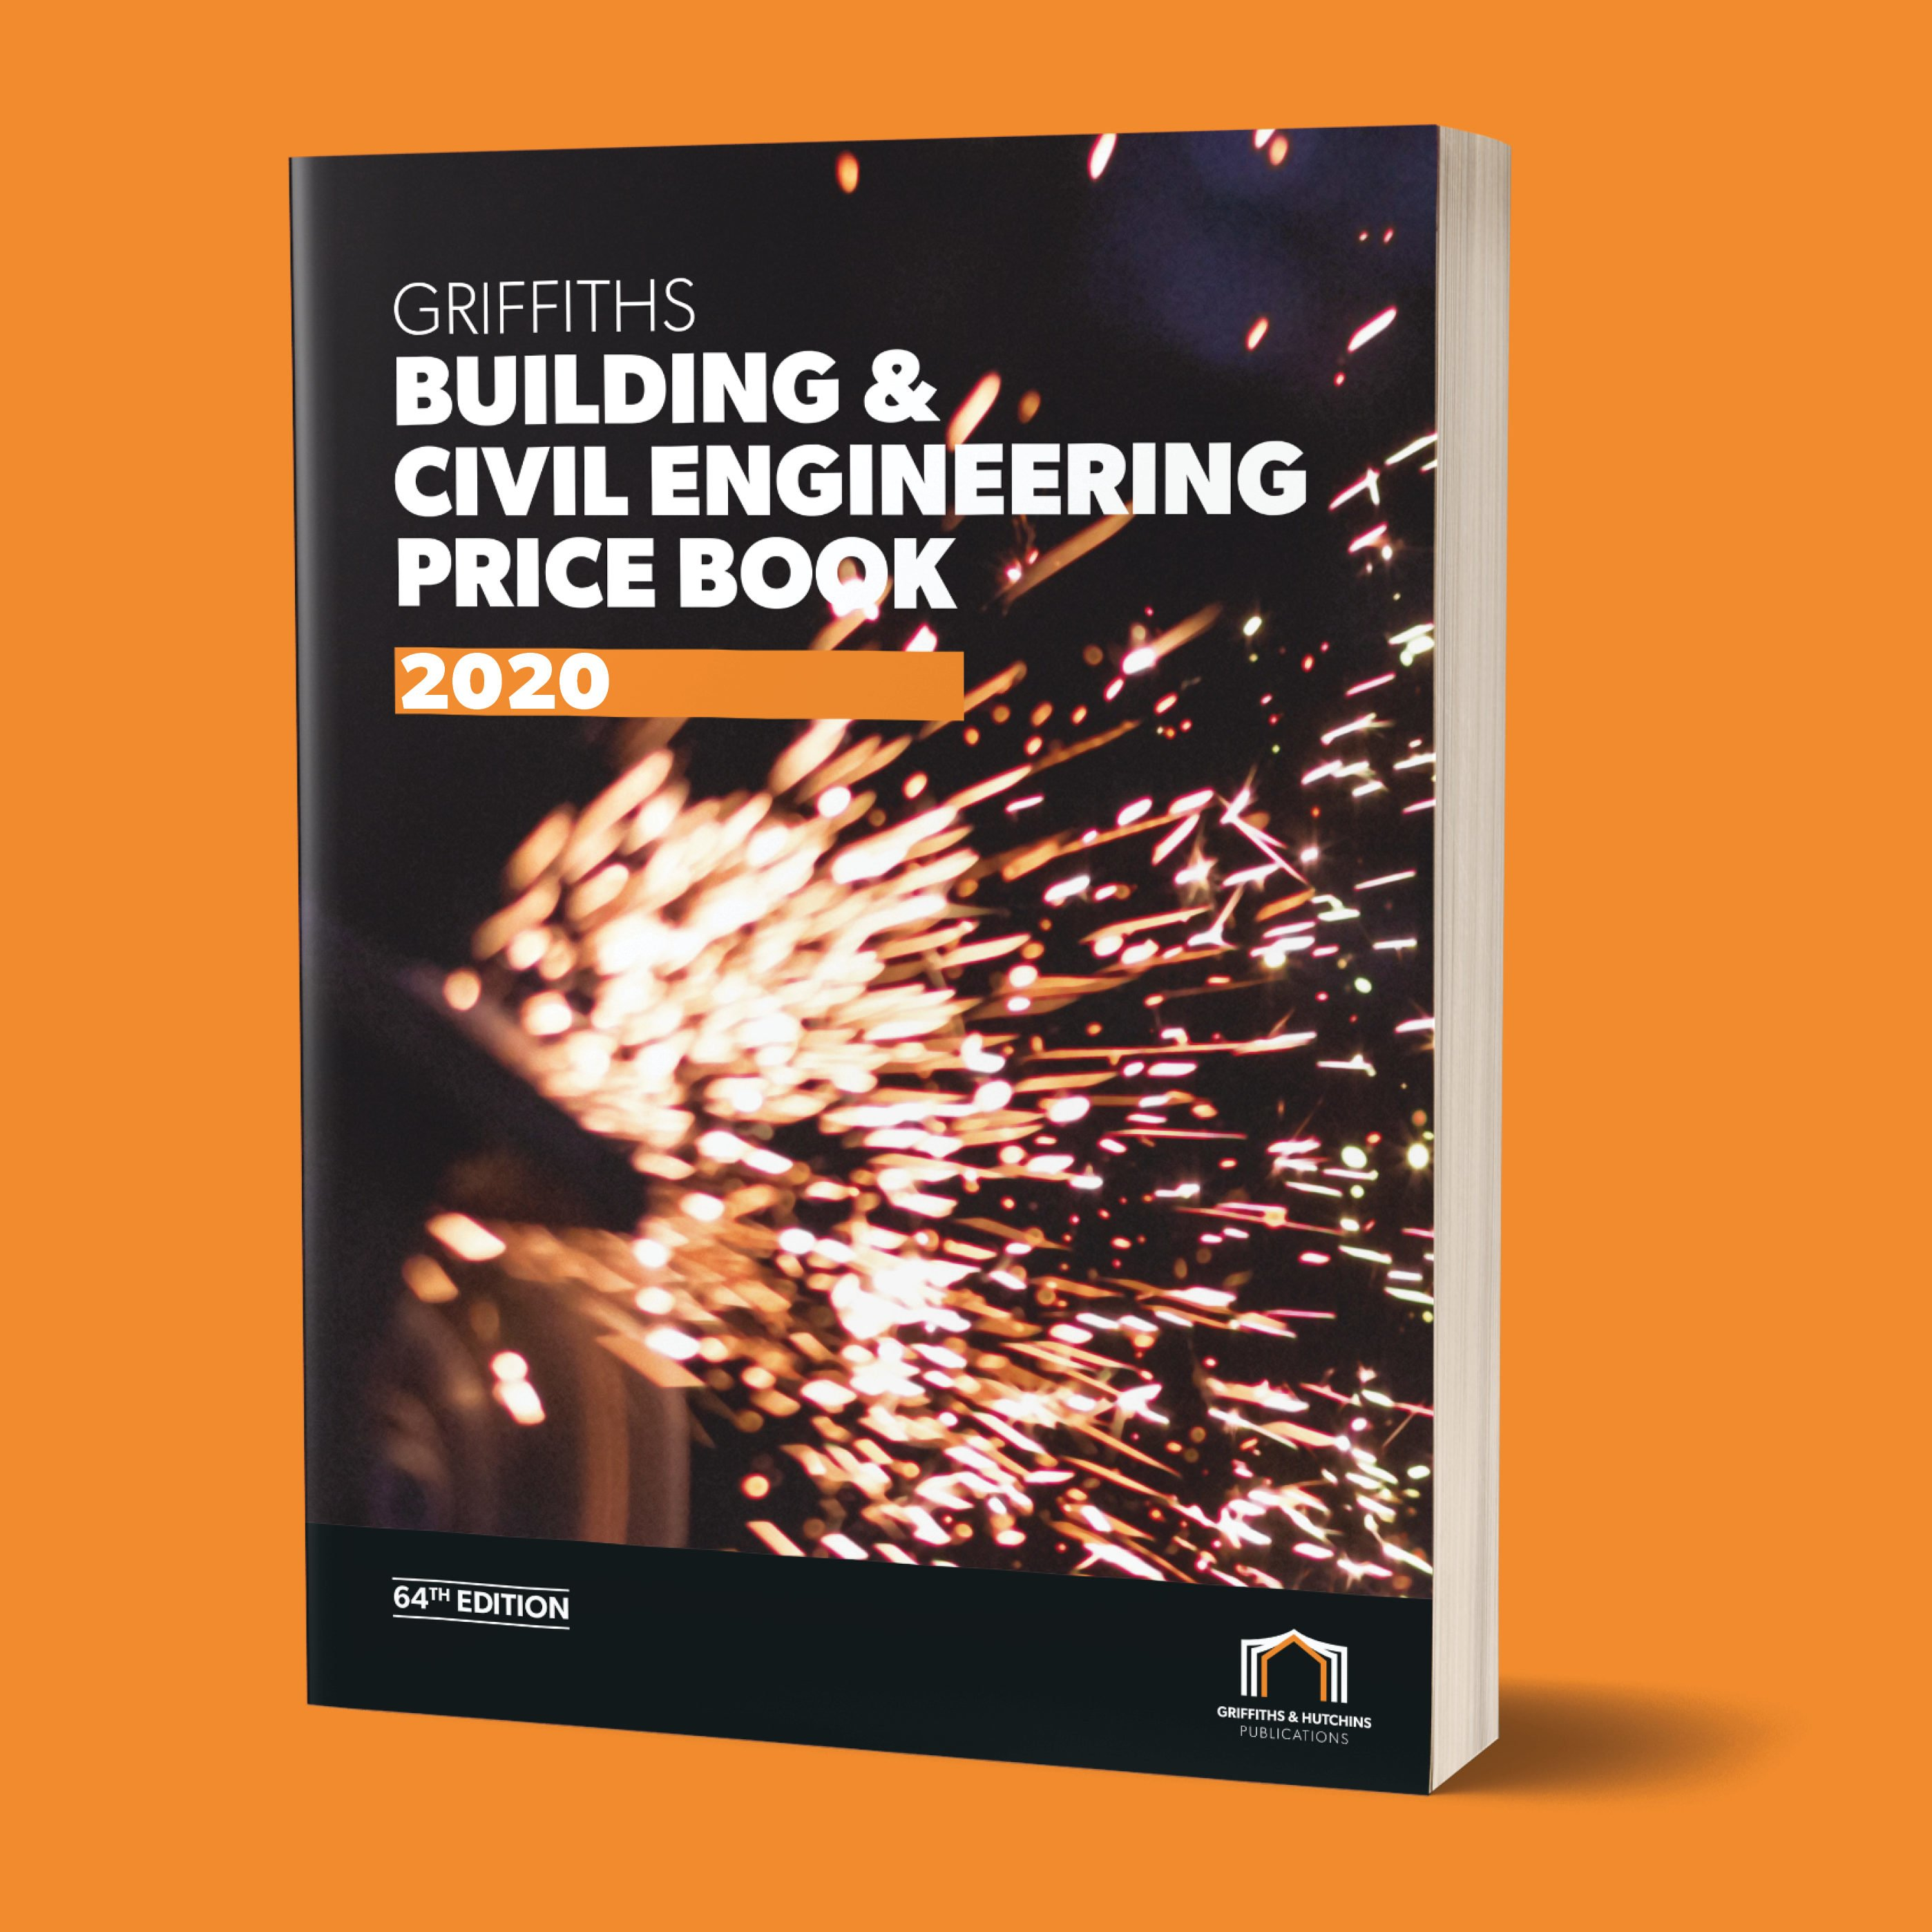 Picture showing the Griffiths Building and Civil Engineering Price Book cover